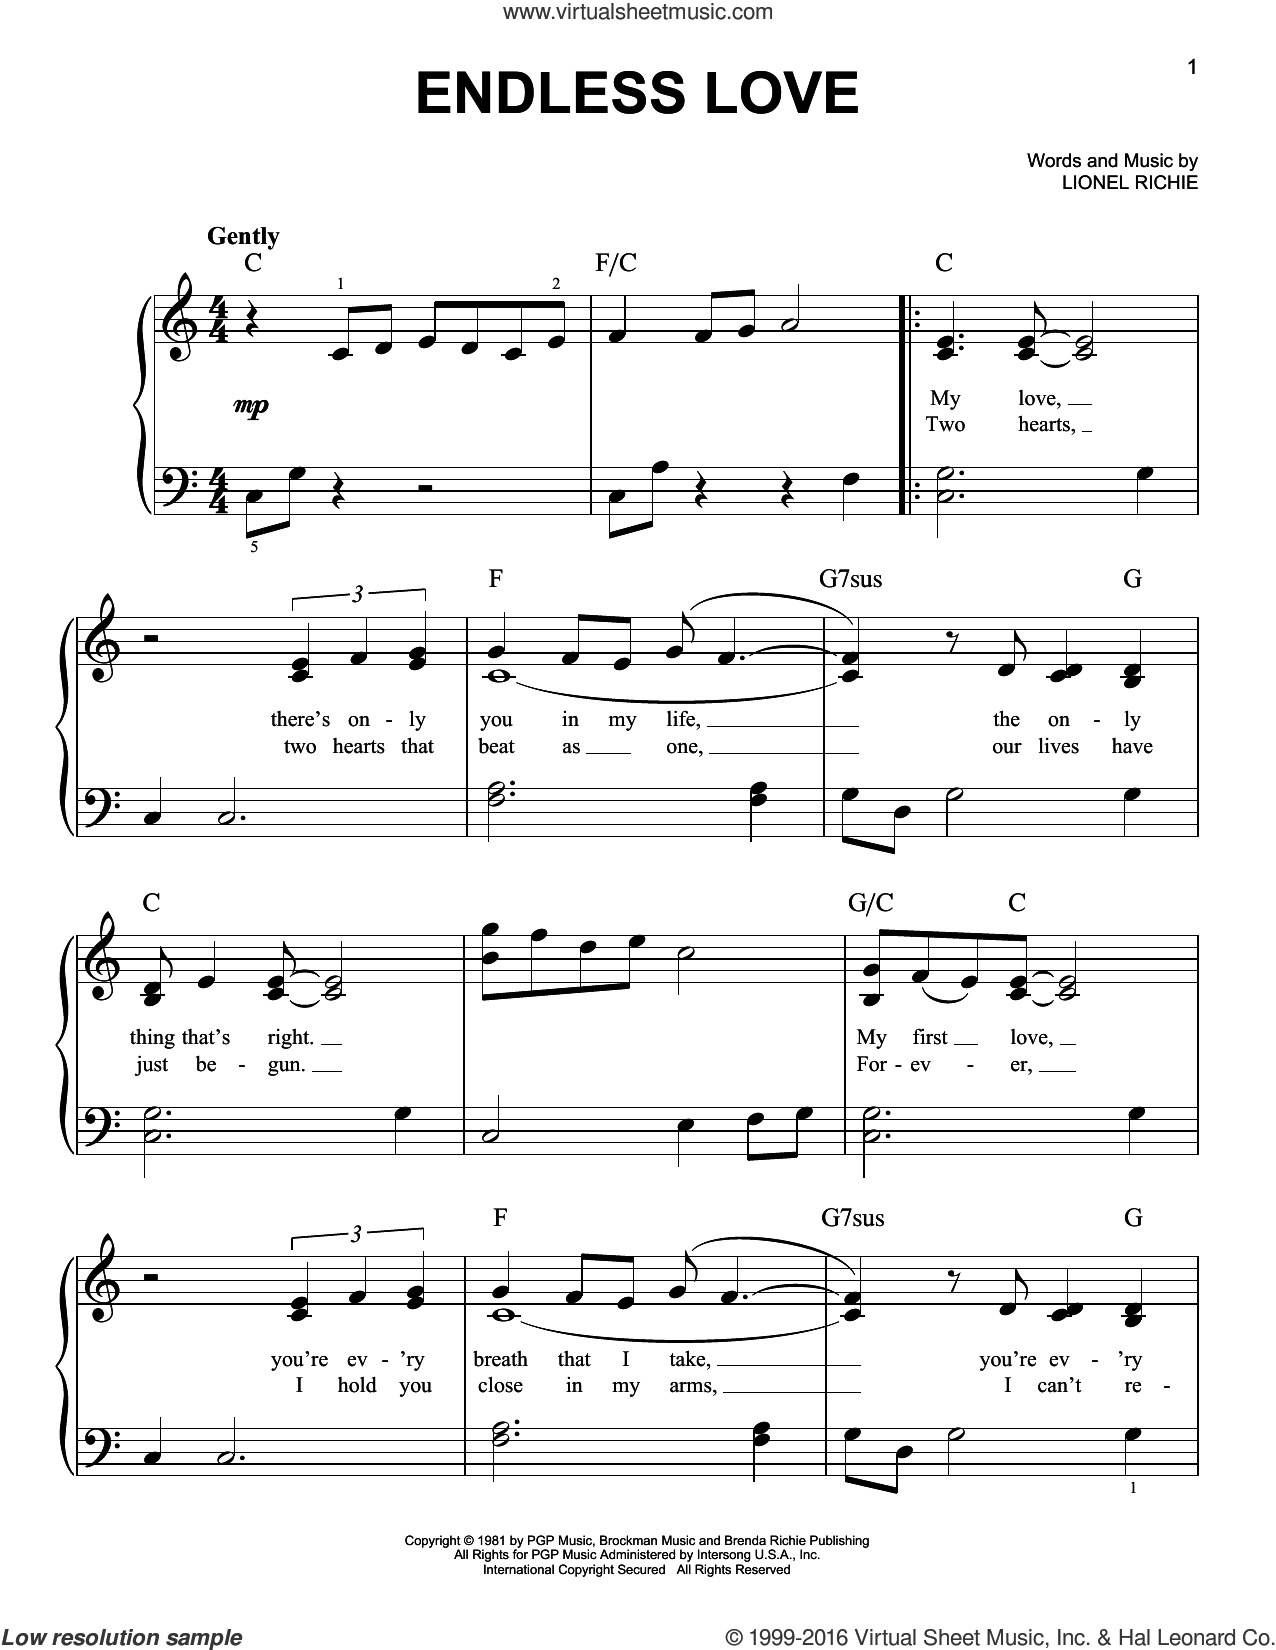 Endless Love sheet music for piano solo by Lionel Richie & Diana Ross, Diana Ross, Miscellaneous and Lionel Richie, wedding score, easy skill level